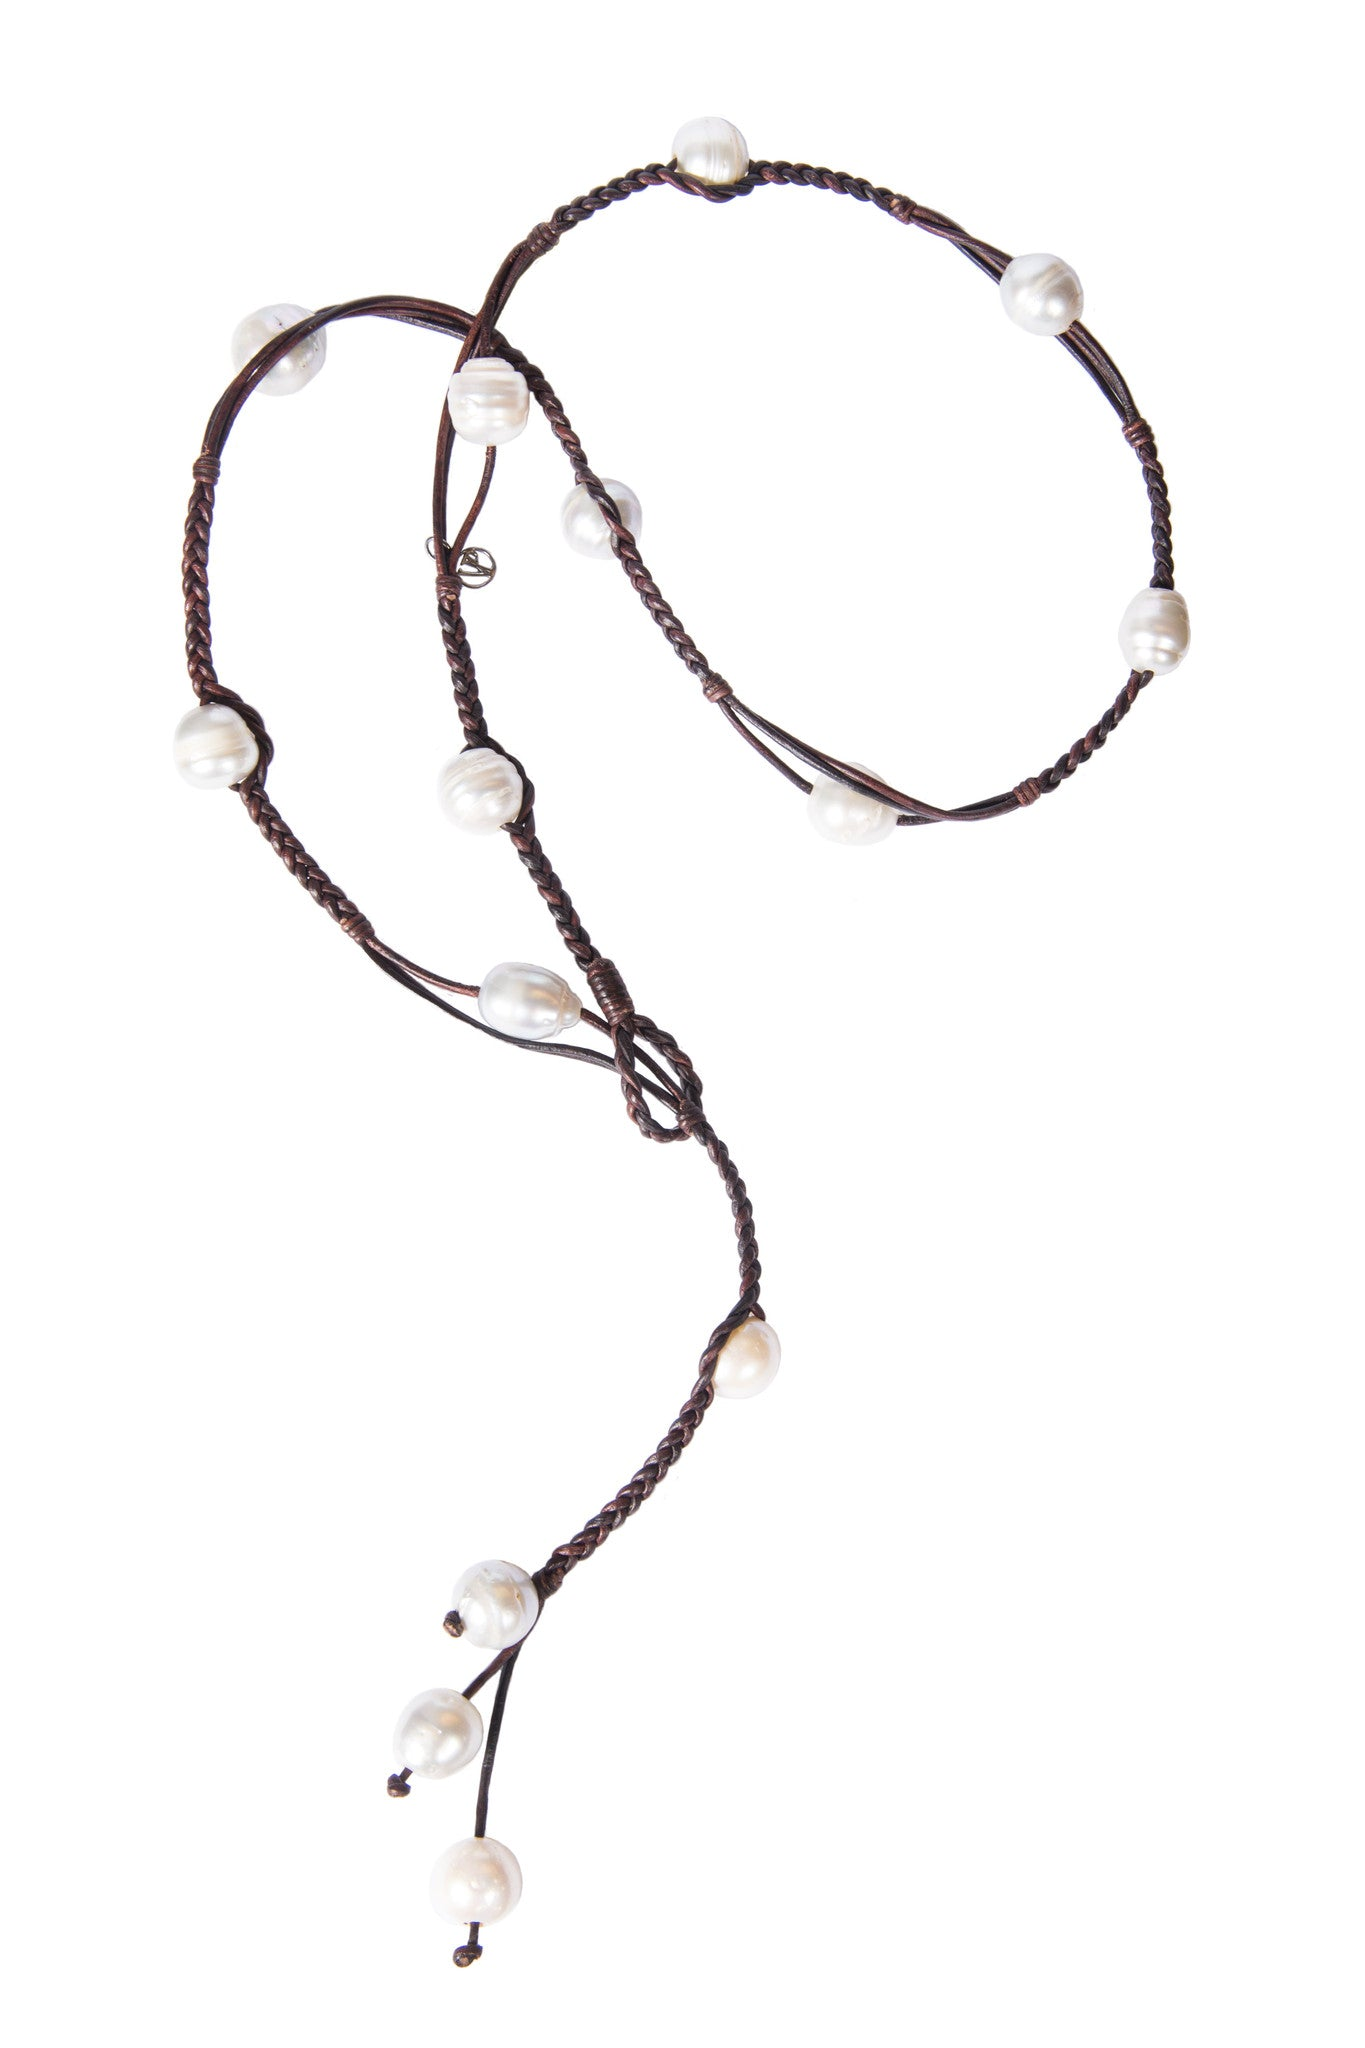 Bohemian Lariat SS - Hottest Designer Pearl and Leather Jewelry | VINCENT PEACH